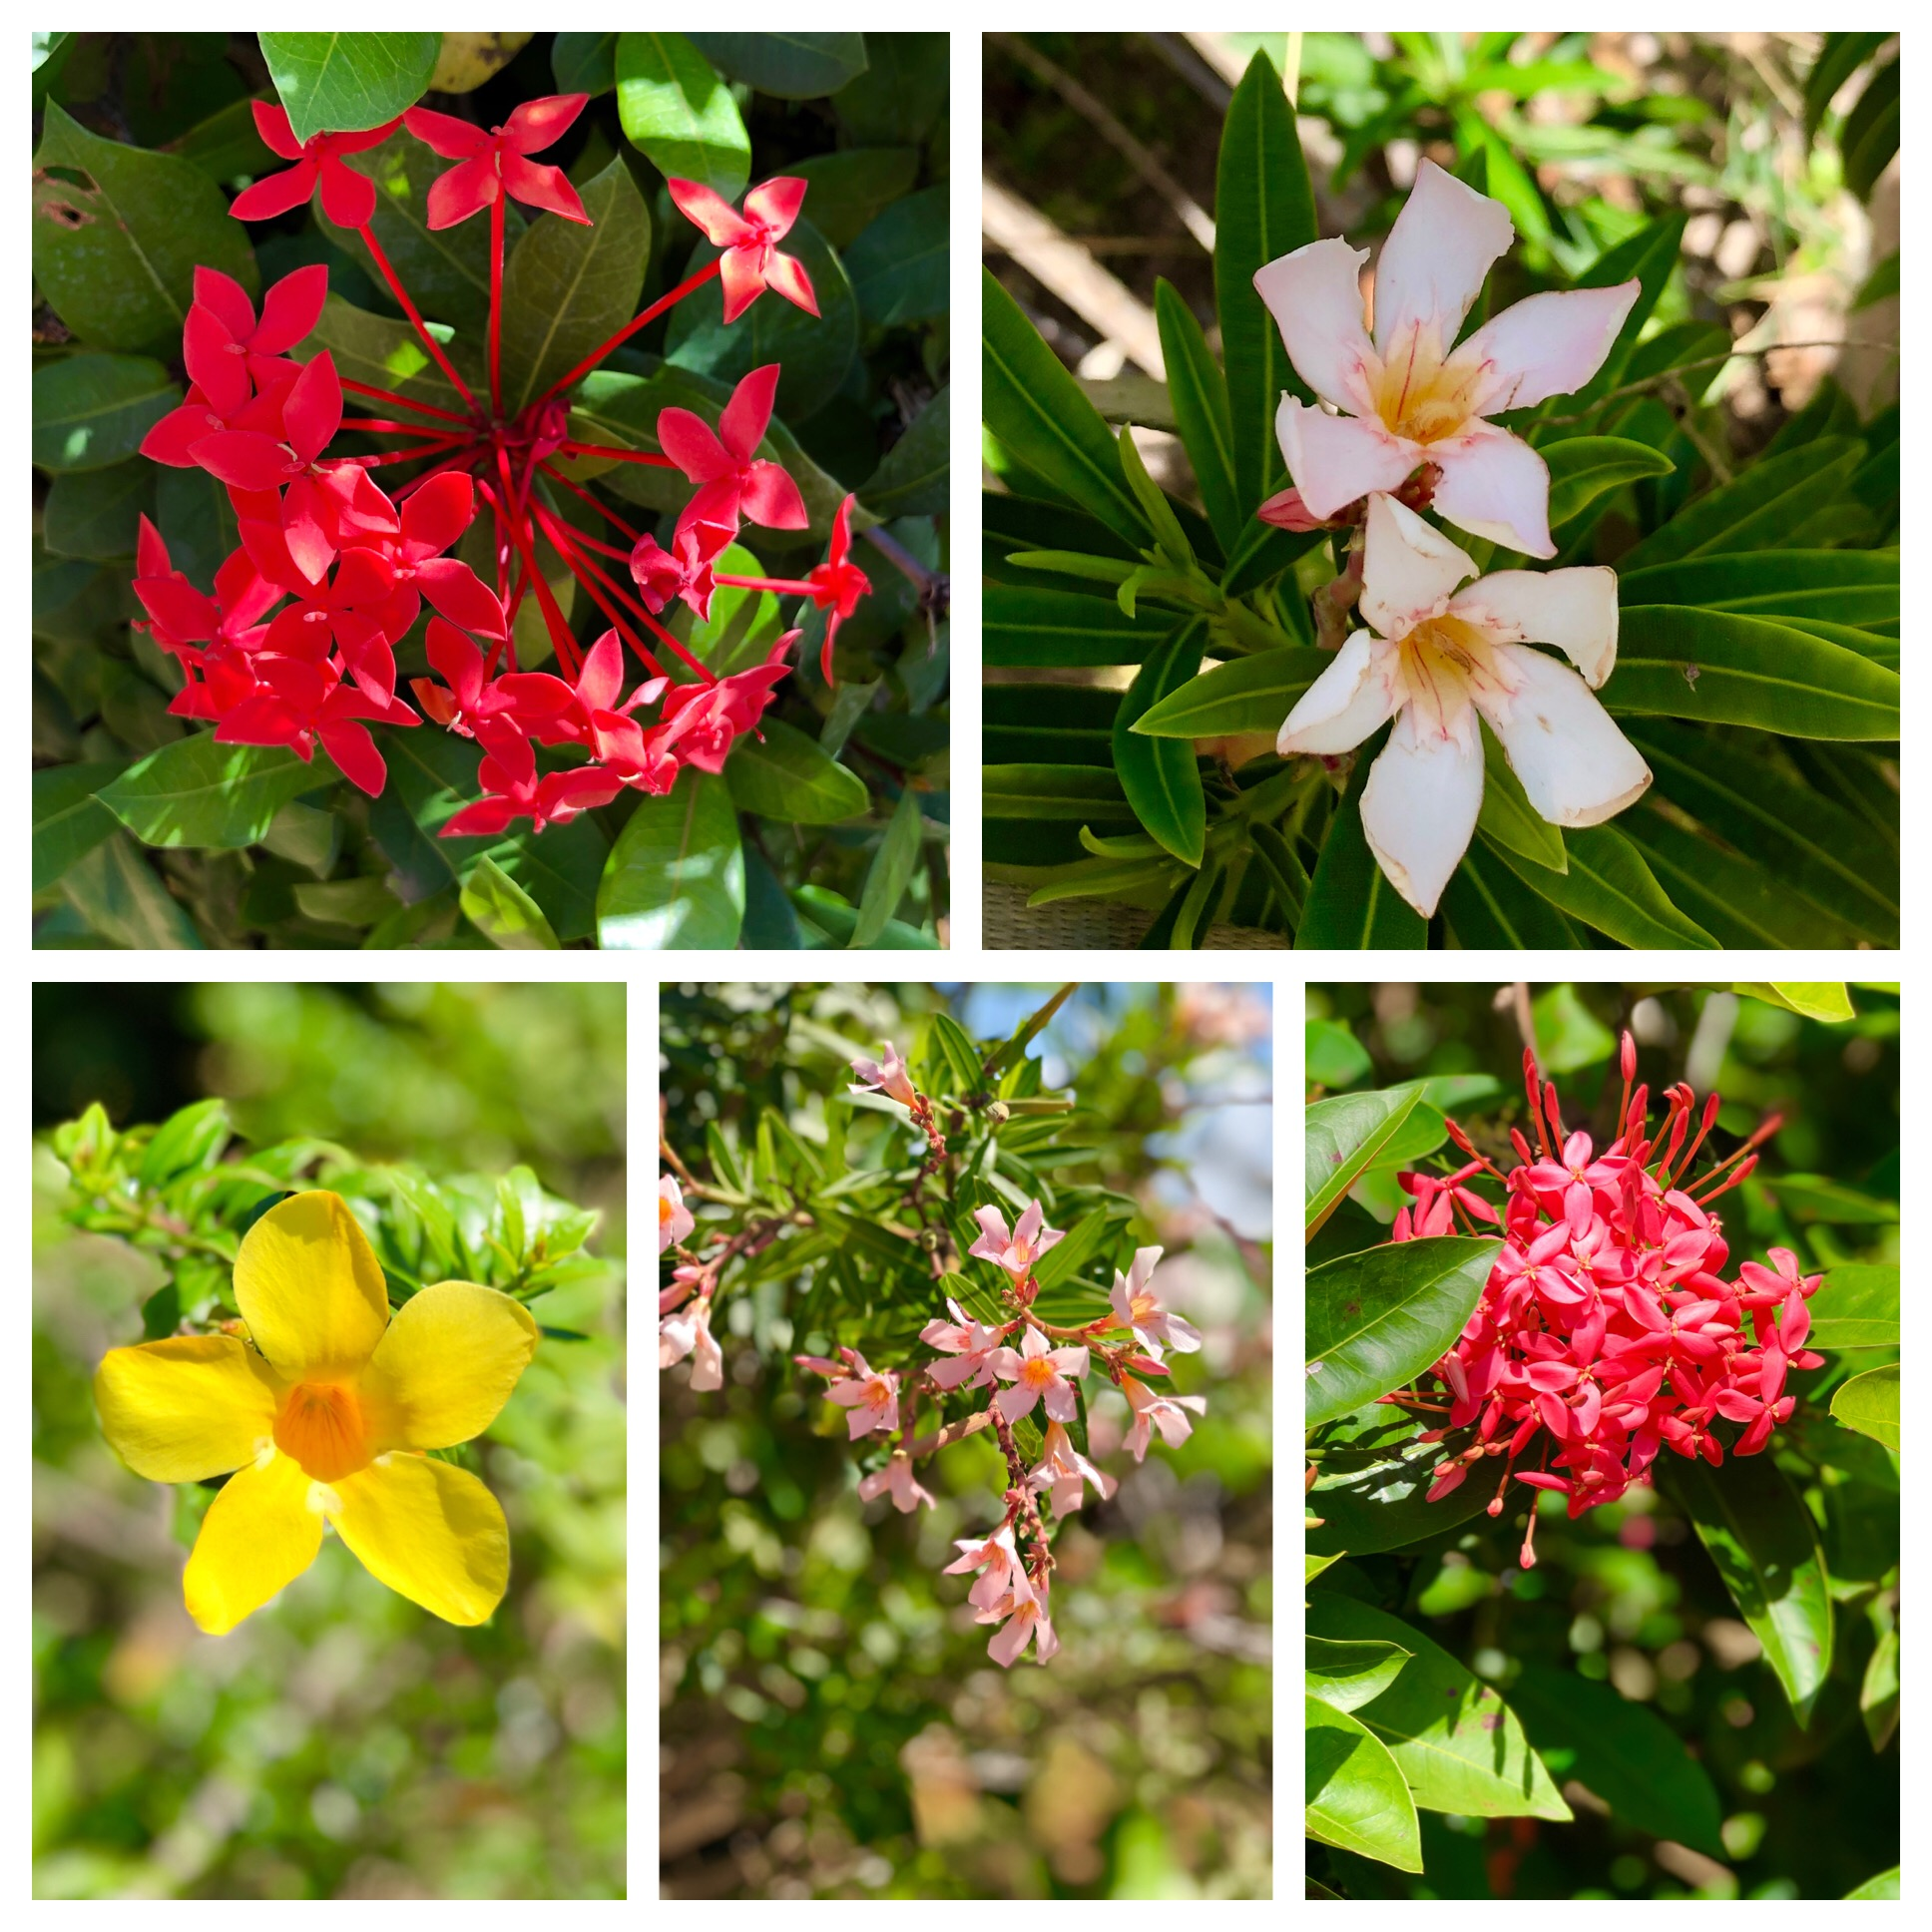 We were thankful for the beautiful flowers spotted mid-Winter…